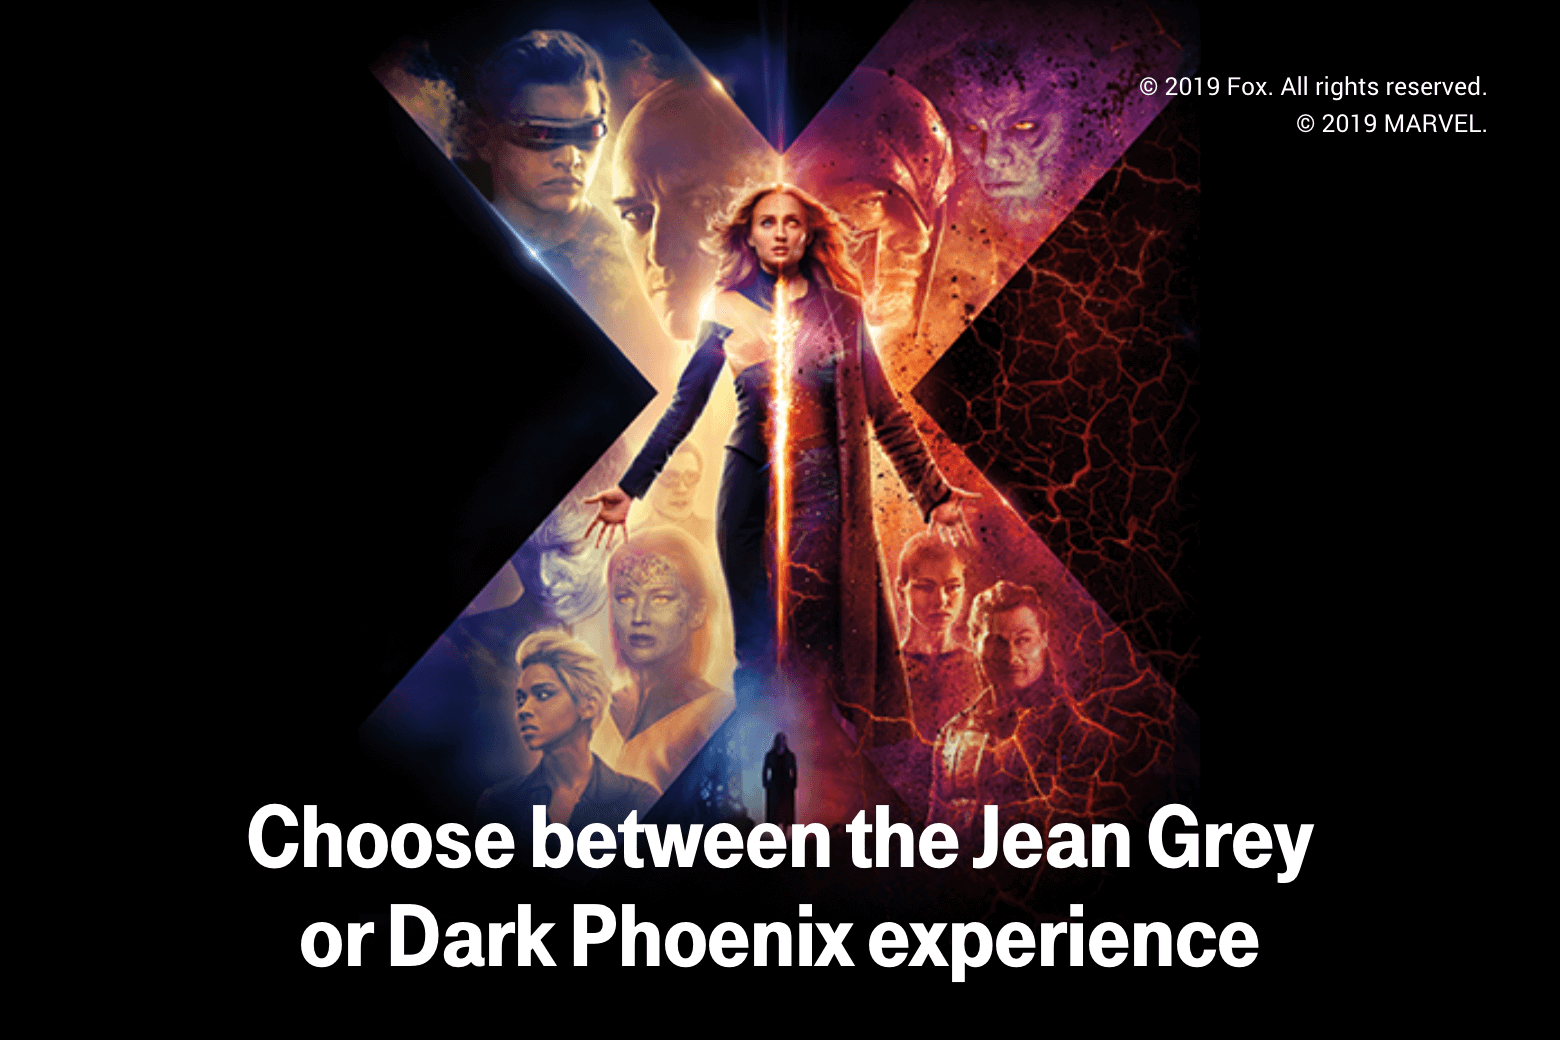 Choose between the Jean Grey or Dark Phoenix experience